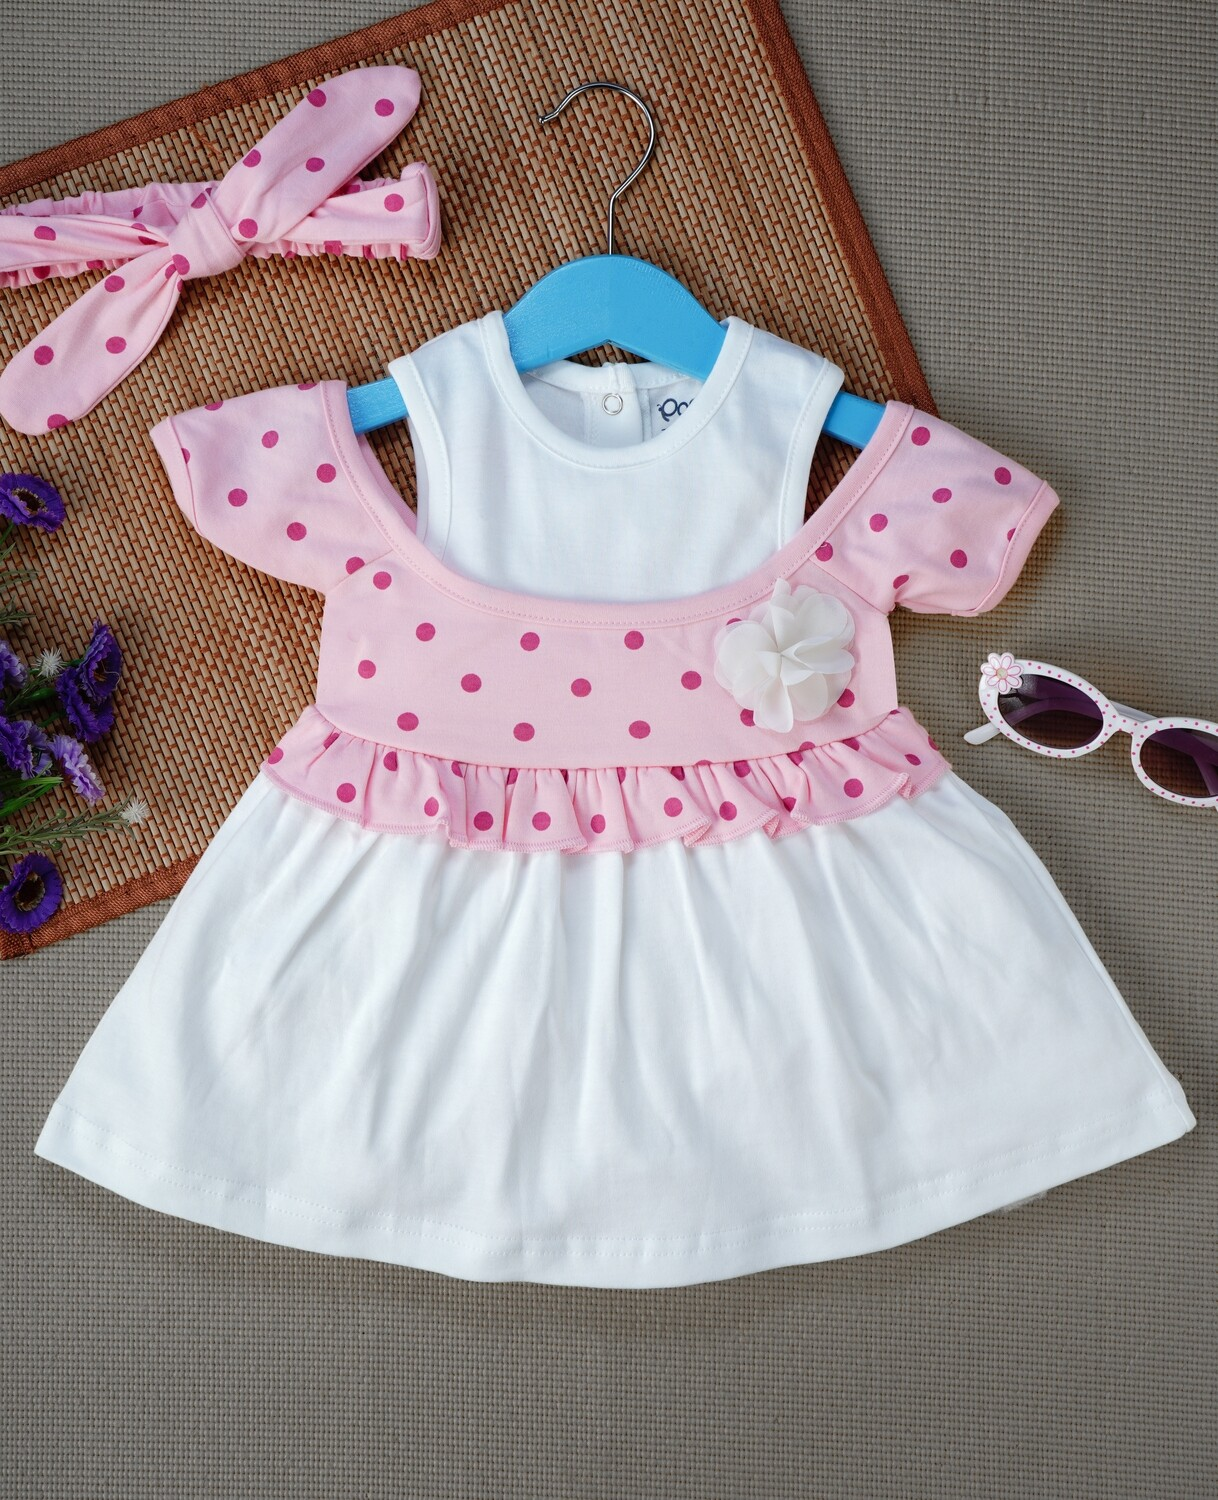 Windi Rose Half Sleeves Frock with Bloomer and Headband for Baby Girls